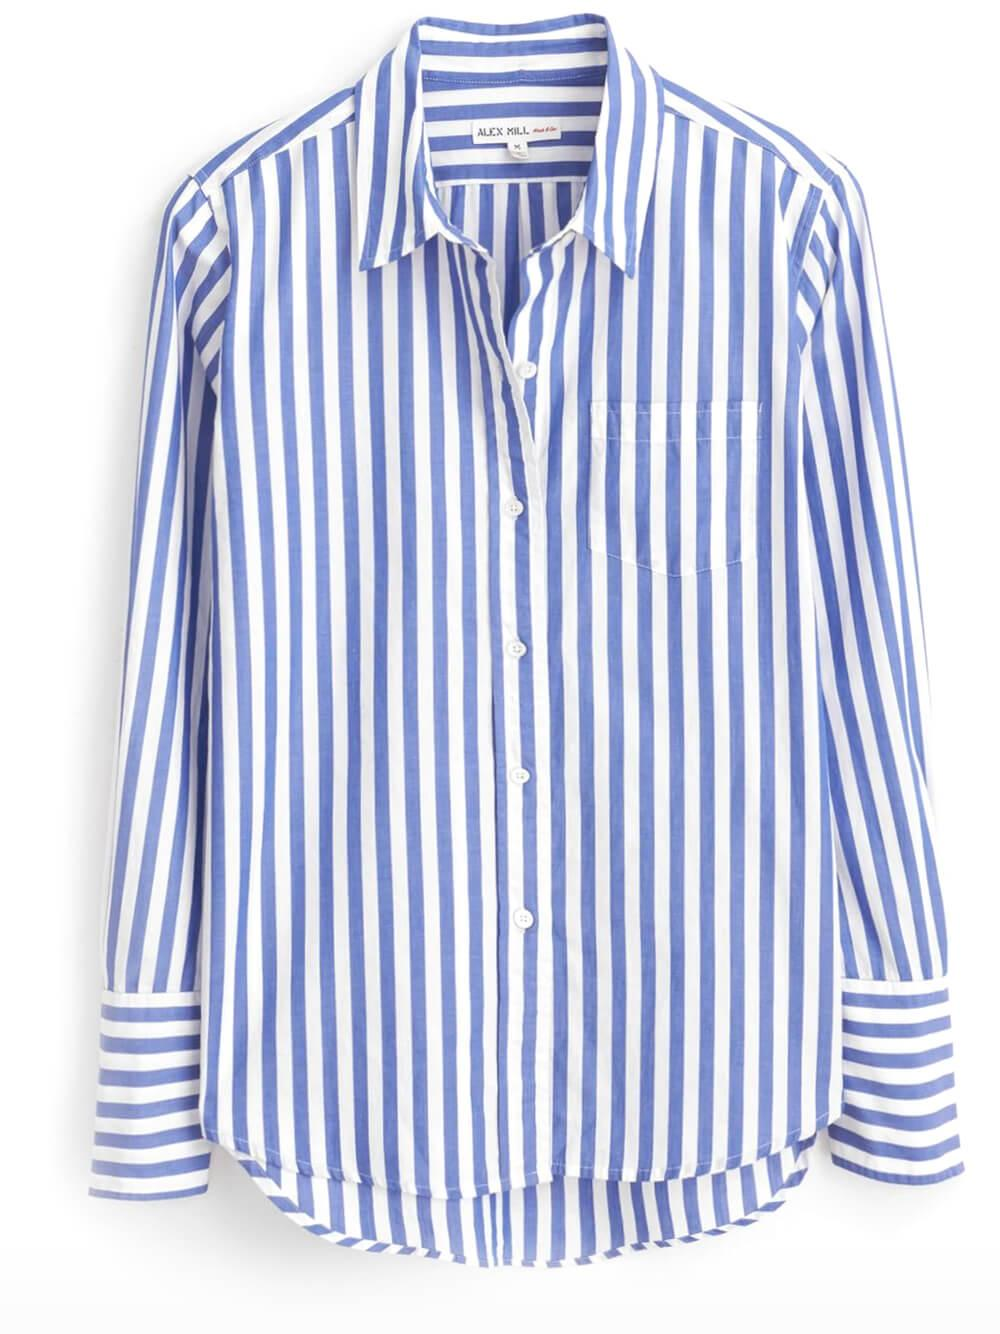 Standard Shirt in Bold Stripe